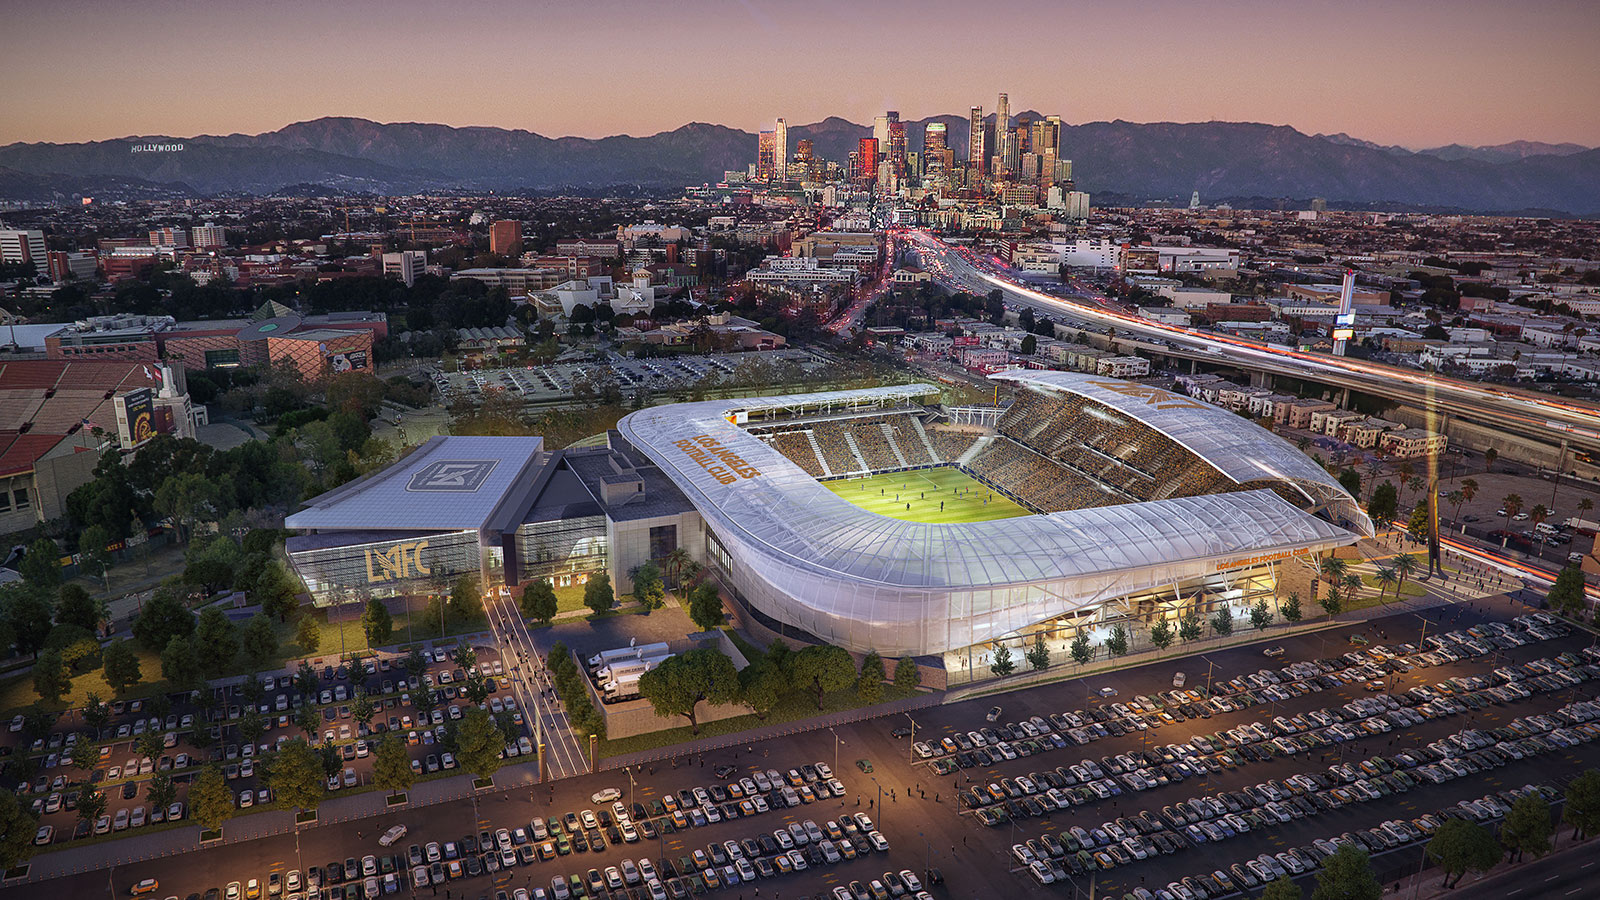 LAFC Stadium Granted Final Approval To Build From LA City Council